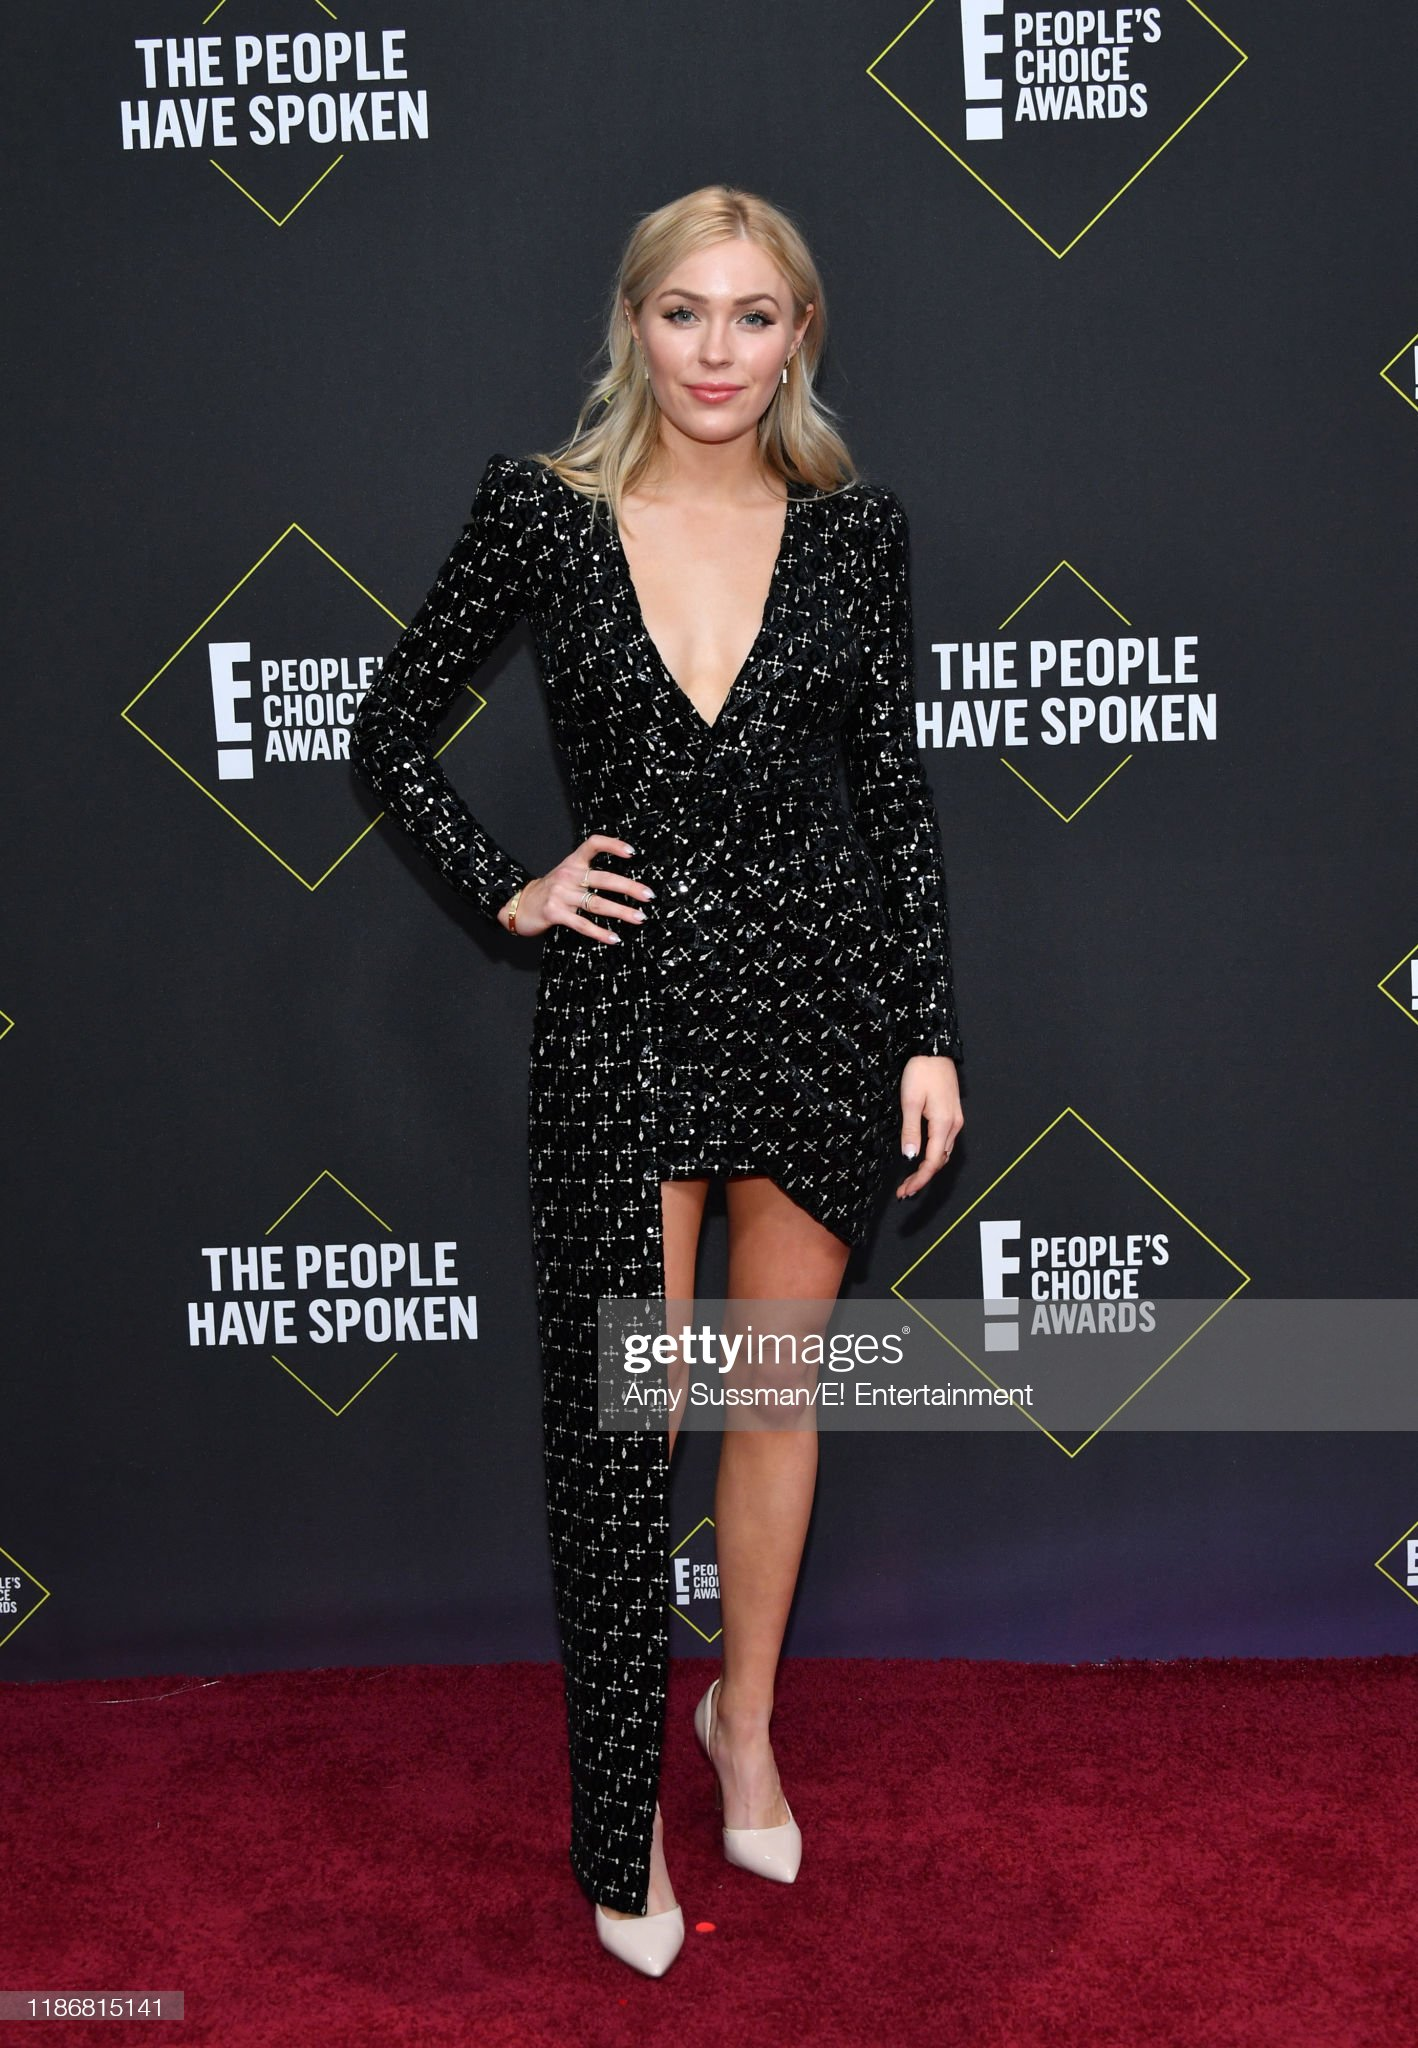 Colton Underwood & Cassie Randolph - Bachelor 23 - Discussion - Page 14 Pictured-cassie-randolph-arrives-to-the-2019-e-peoples-choice-awards-picture-id1186815141?s=2048x2048